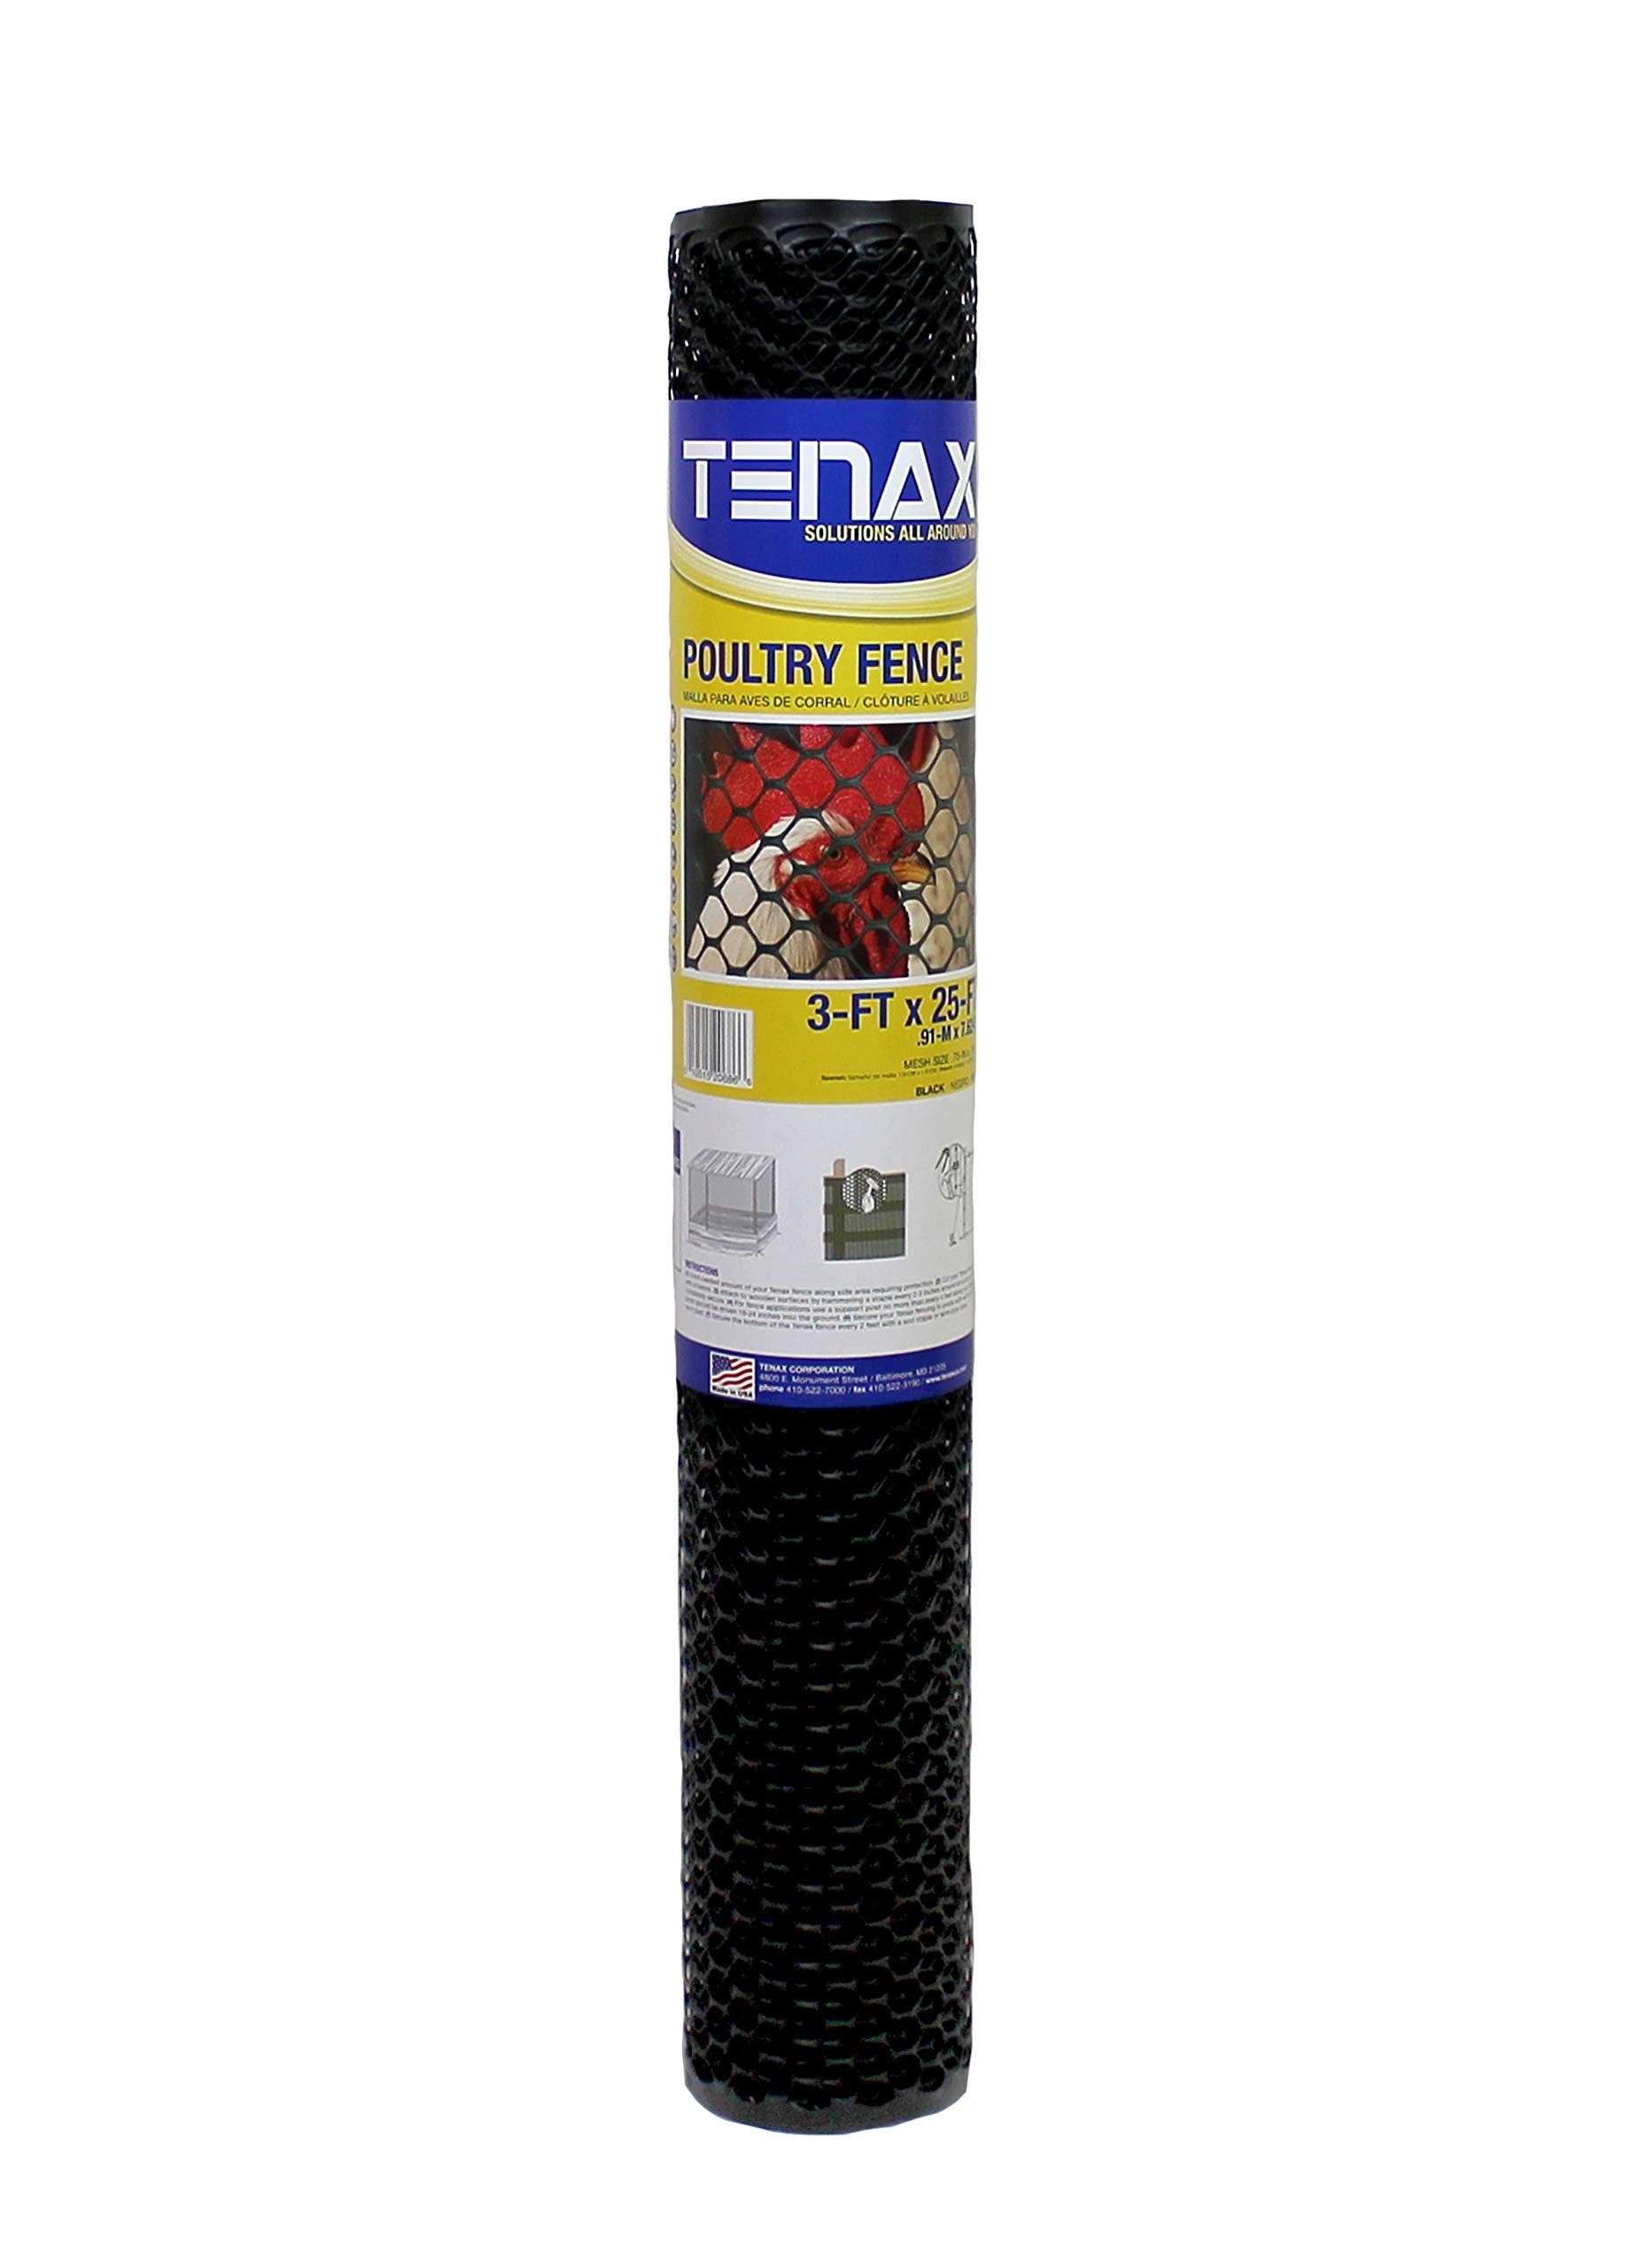 Tenax 72120546 Hex Poultry Fence, 3' x 25' Black by Tenax